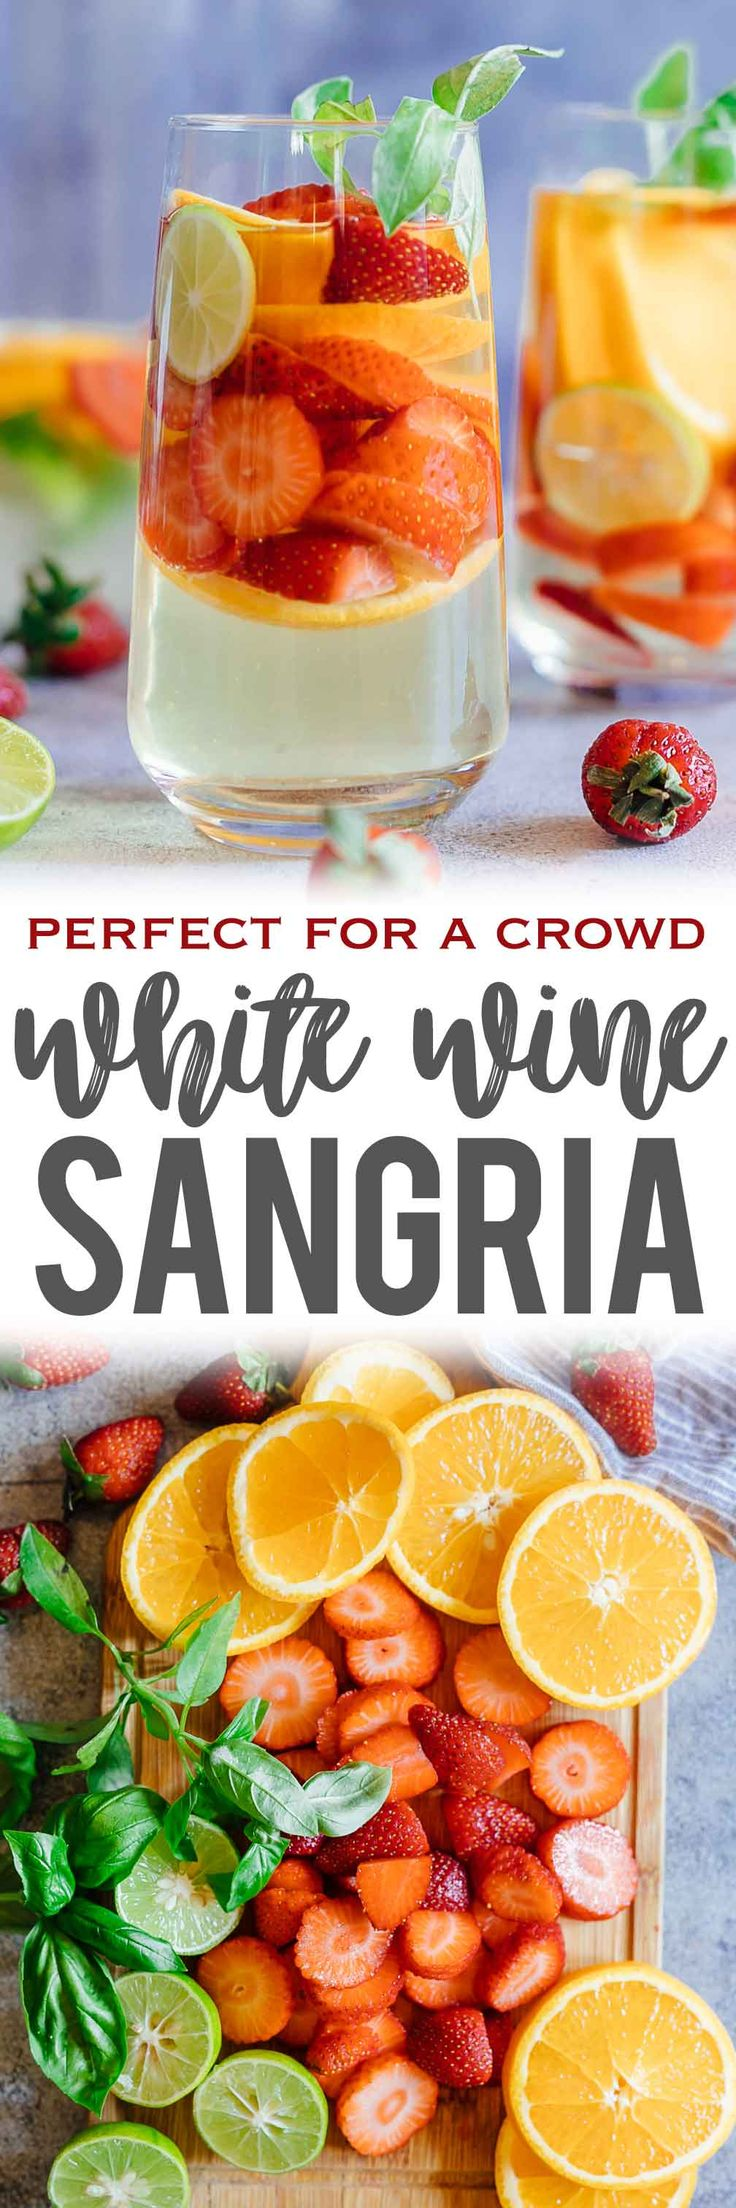 Learn how to make a refreshing Strawberry Orange White Wine Sangria that combines the sweetness and flavours of strawberries, oranges, limes and basil with white wine for a cocktail that everyone's going to love. It's the perfect brunch drink that can be made ahead in a pitcher for a crowd. #whitesangria #wine #cocktail #redwine #drinks #summer #recipe via @my_foodstory